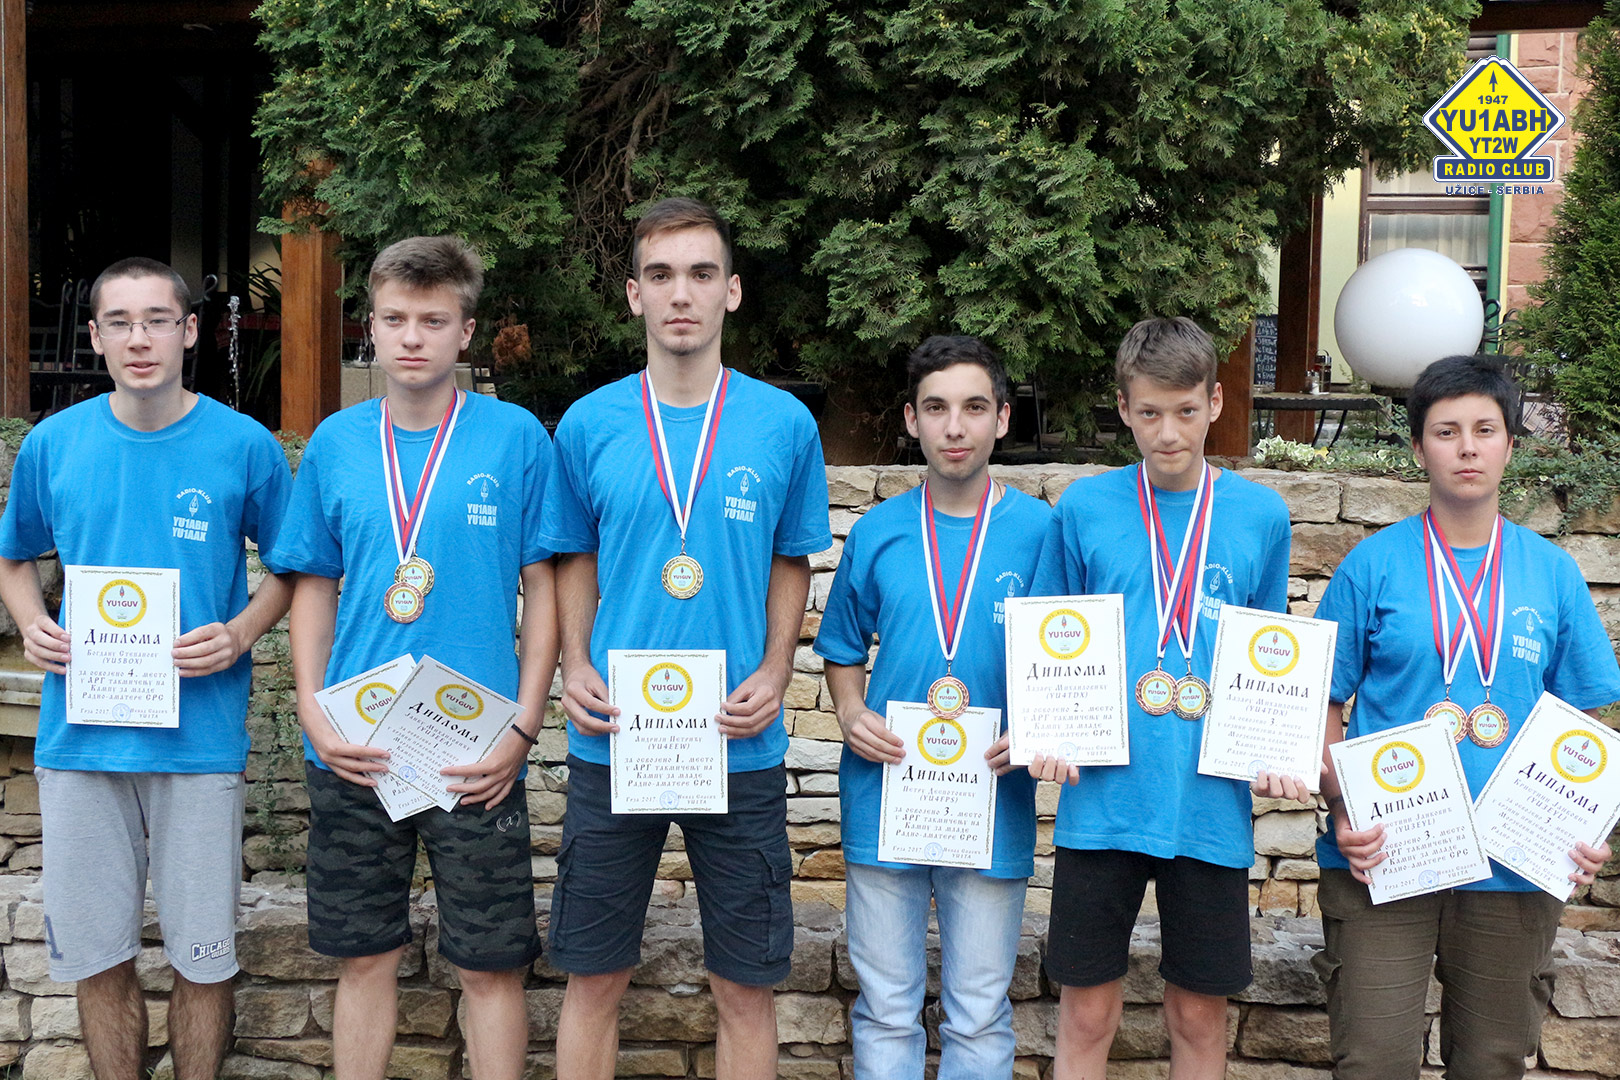 Janko Mihailovic Yu3eea Won The First Place In High Speed Telegraphy And The Third Place In Radio Goniometry